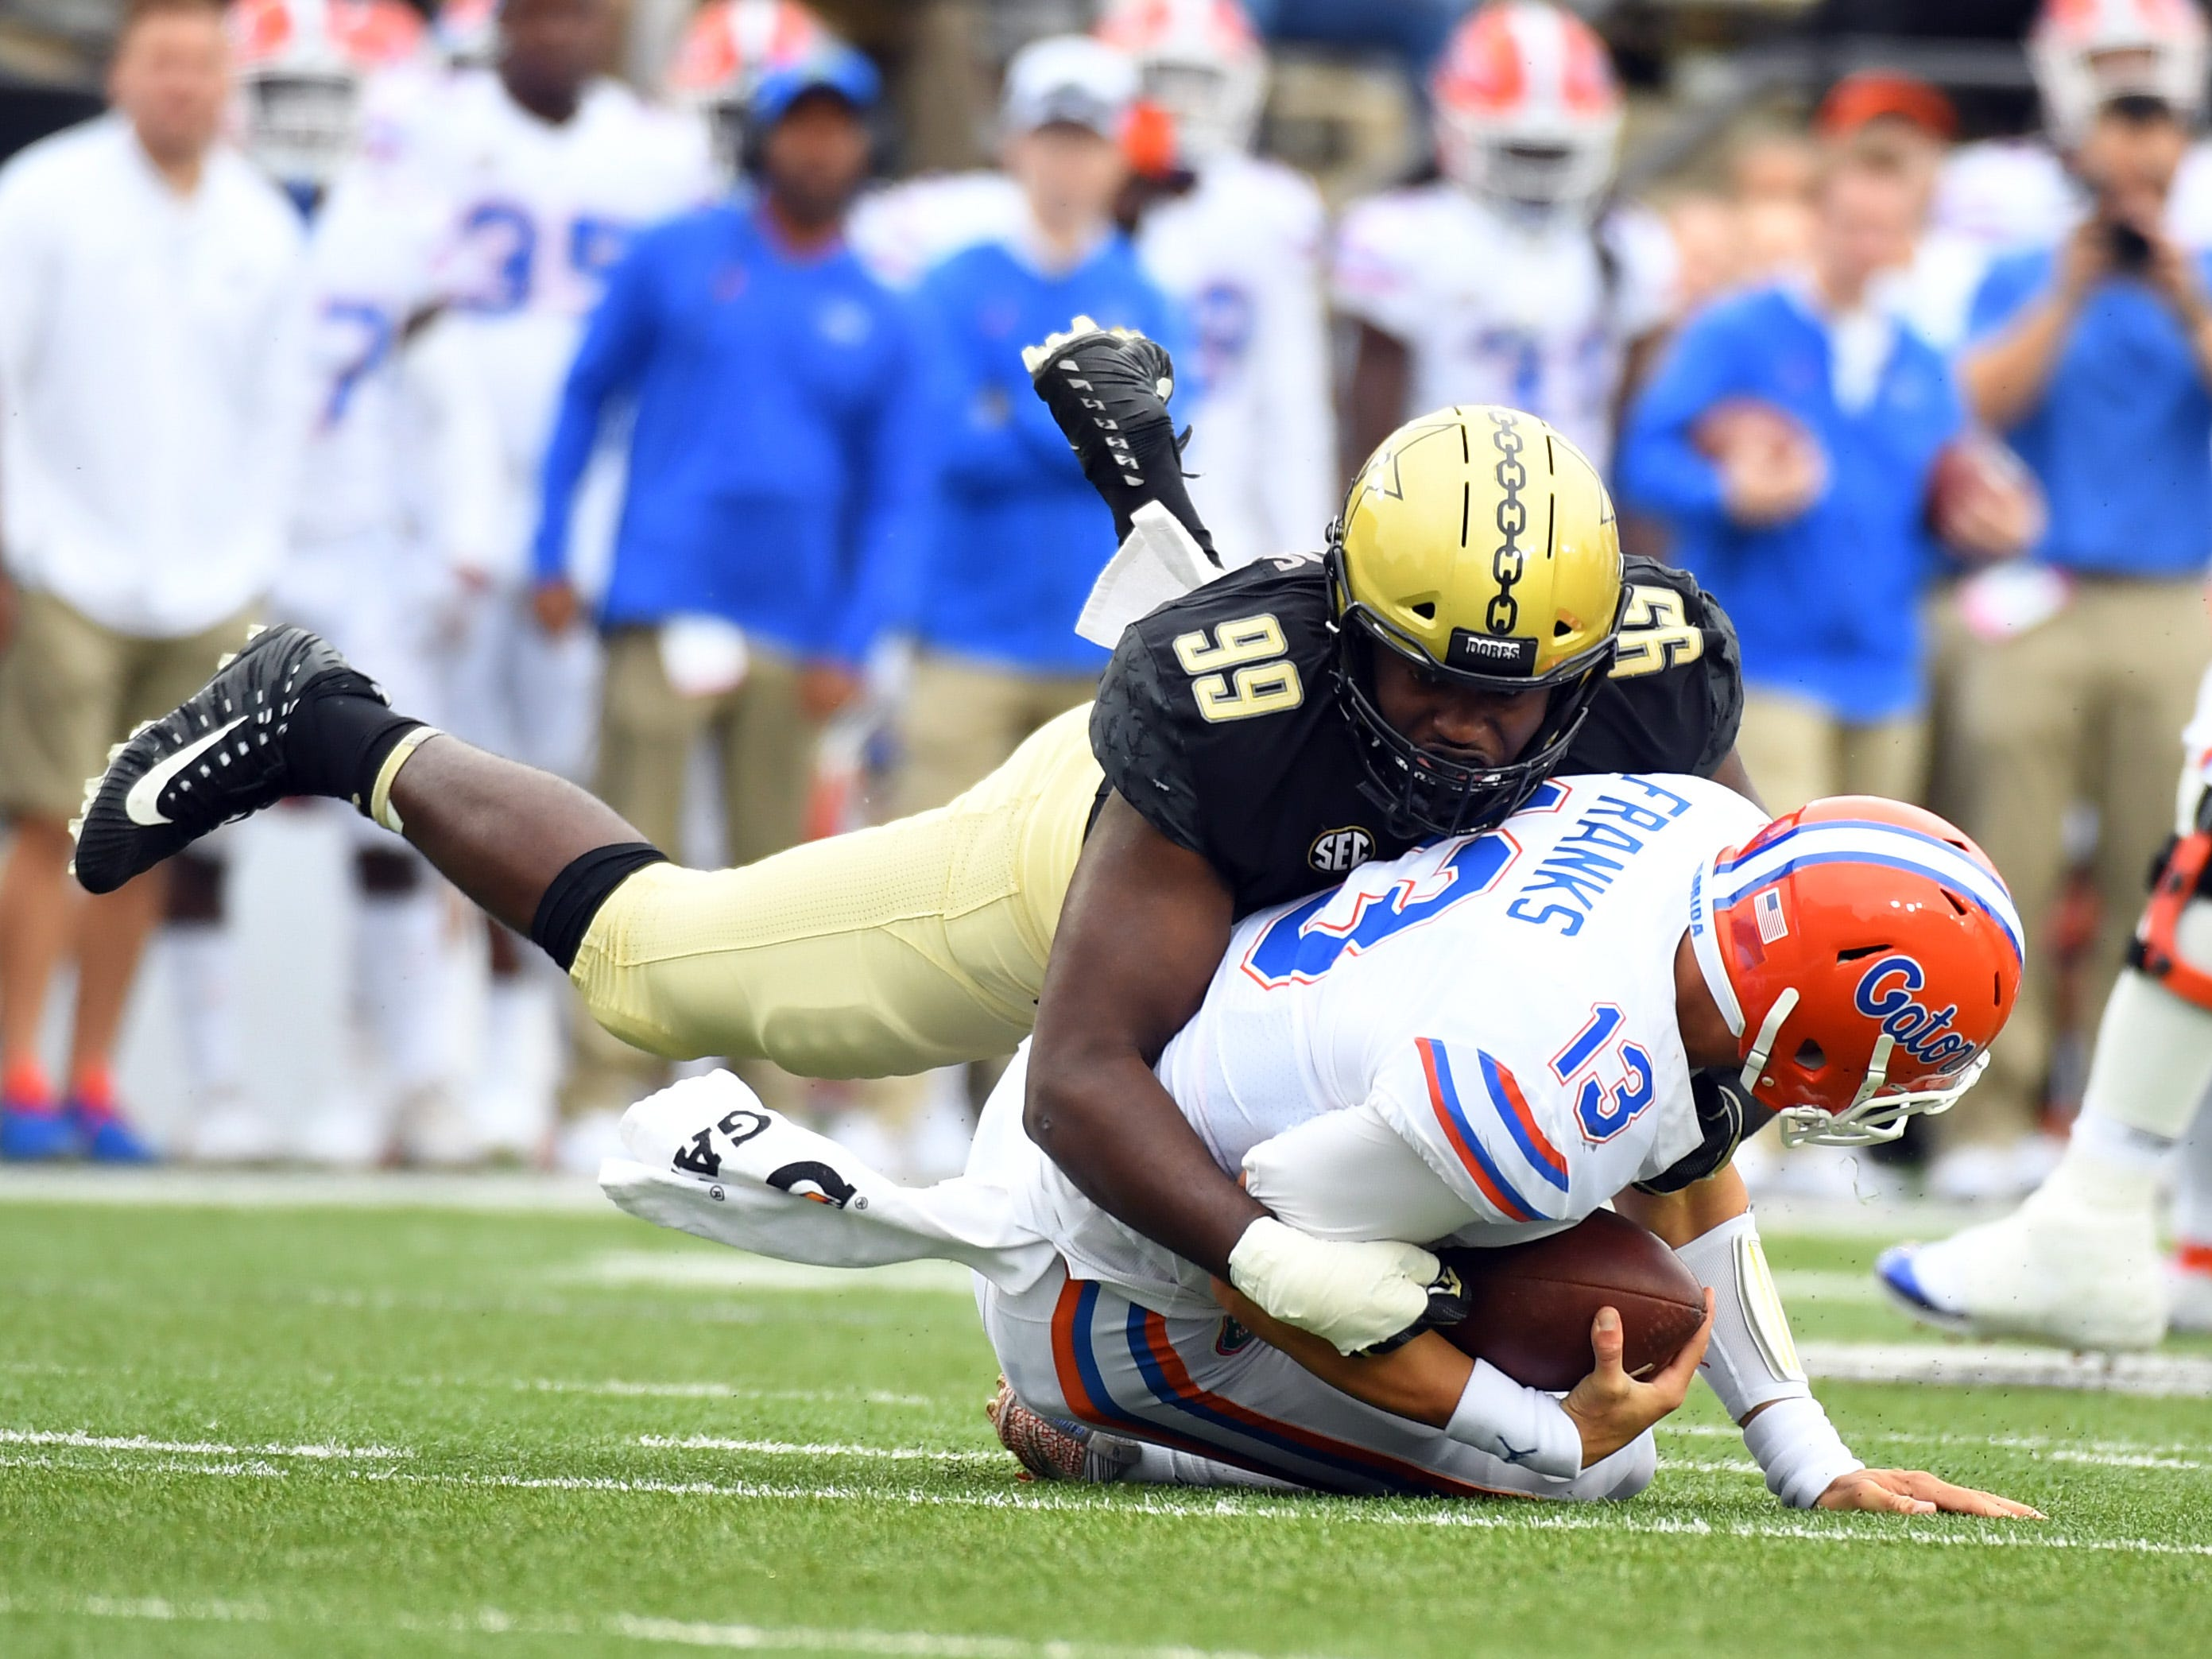 Vanderbilt defensive lineman Stone Edwards sacks Florida quarterback Feleipe Franks during the first half.